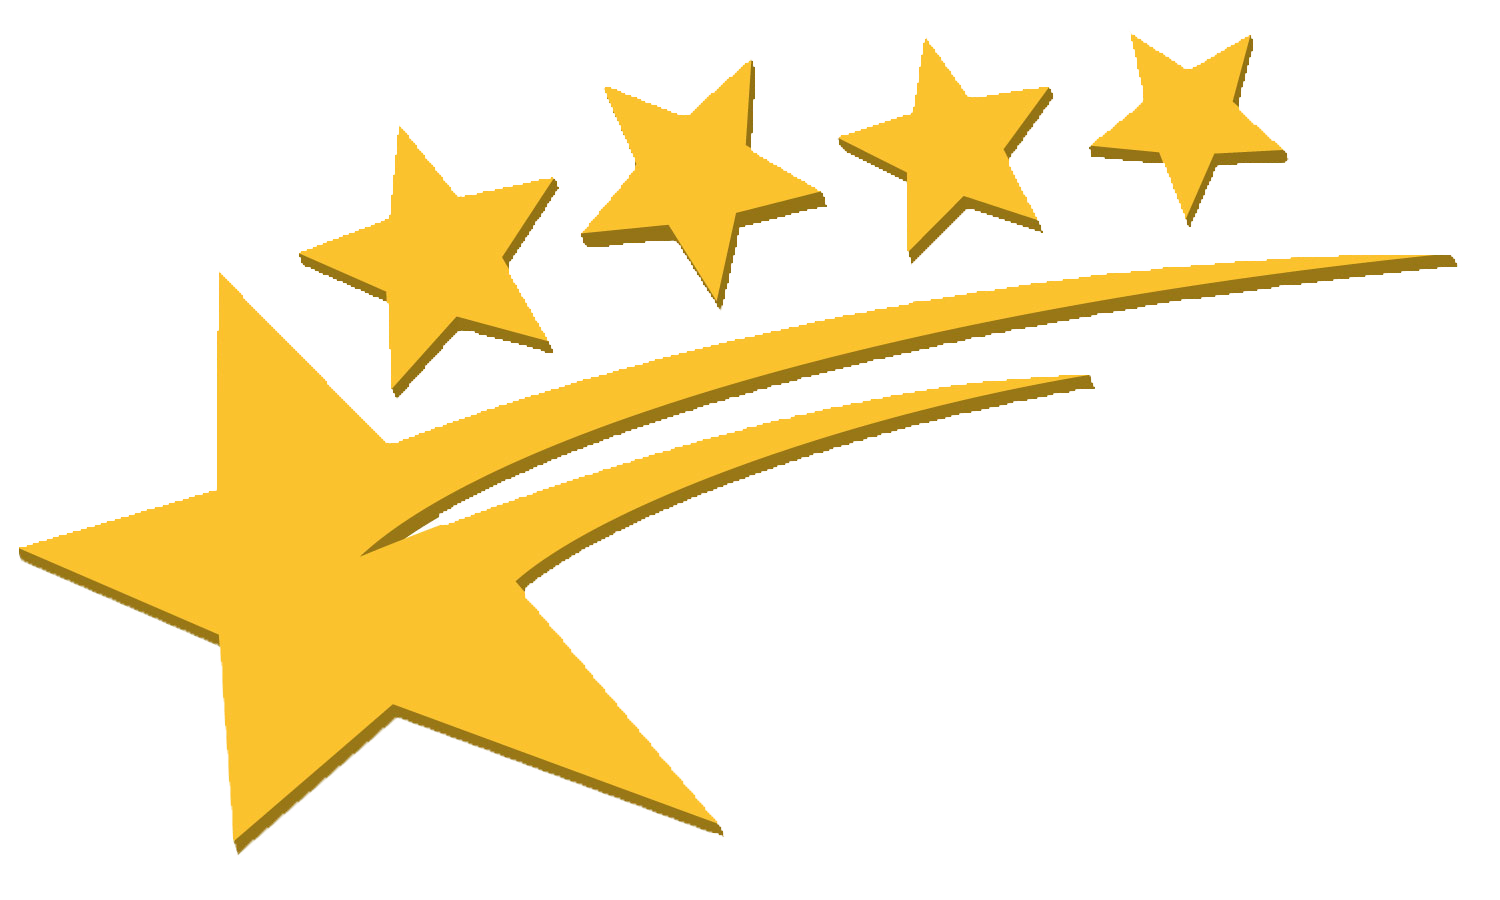 5 stars png transparent. Star quality rated